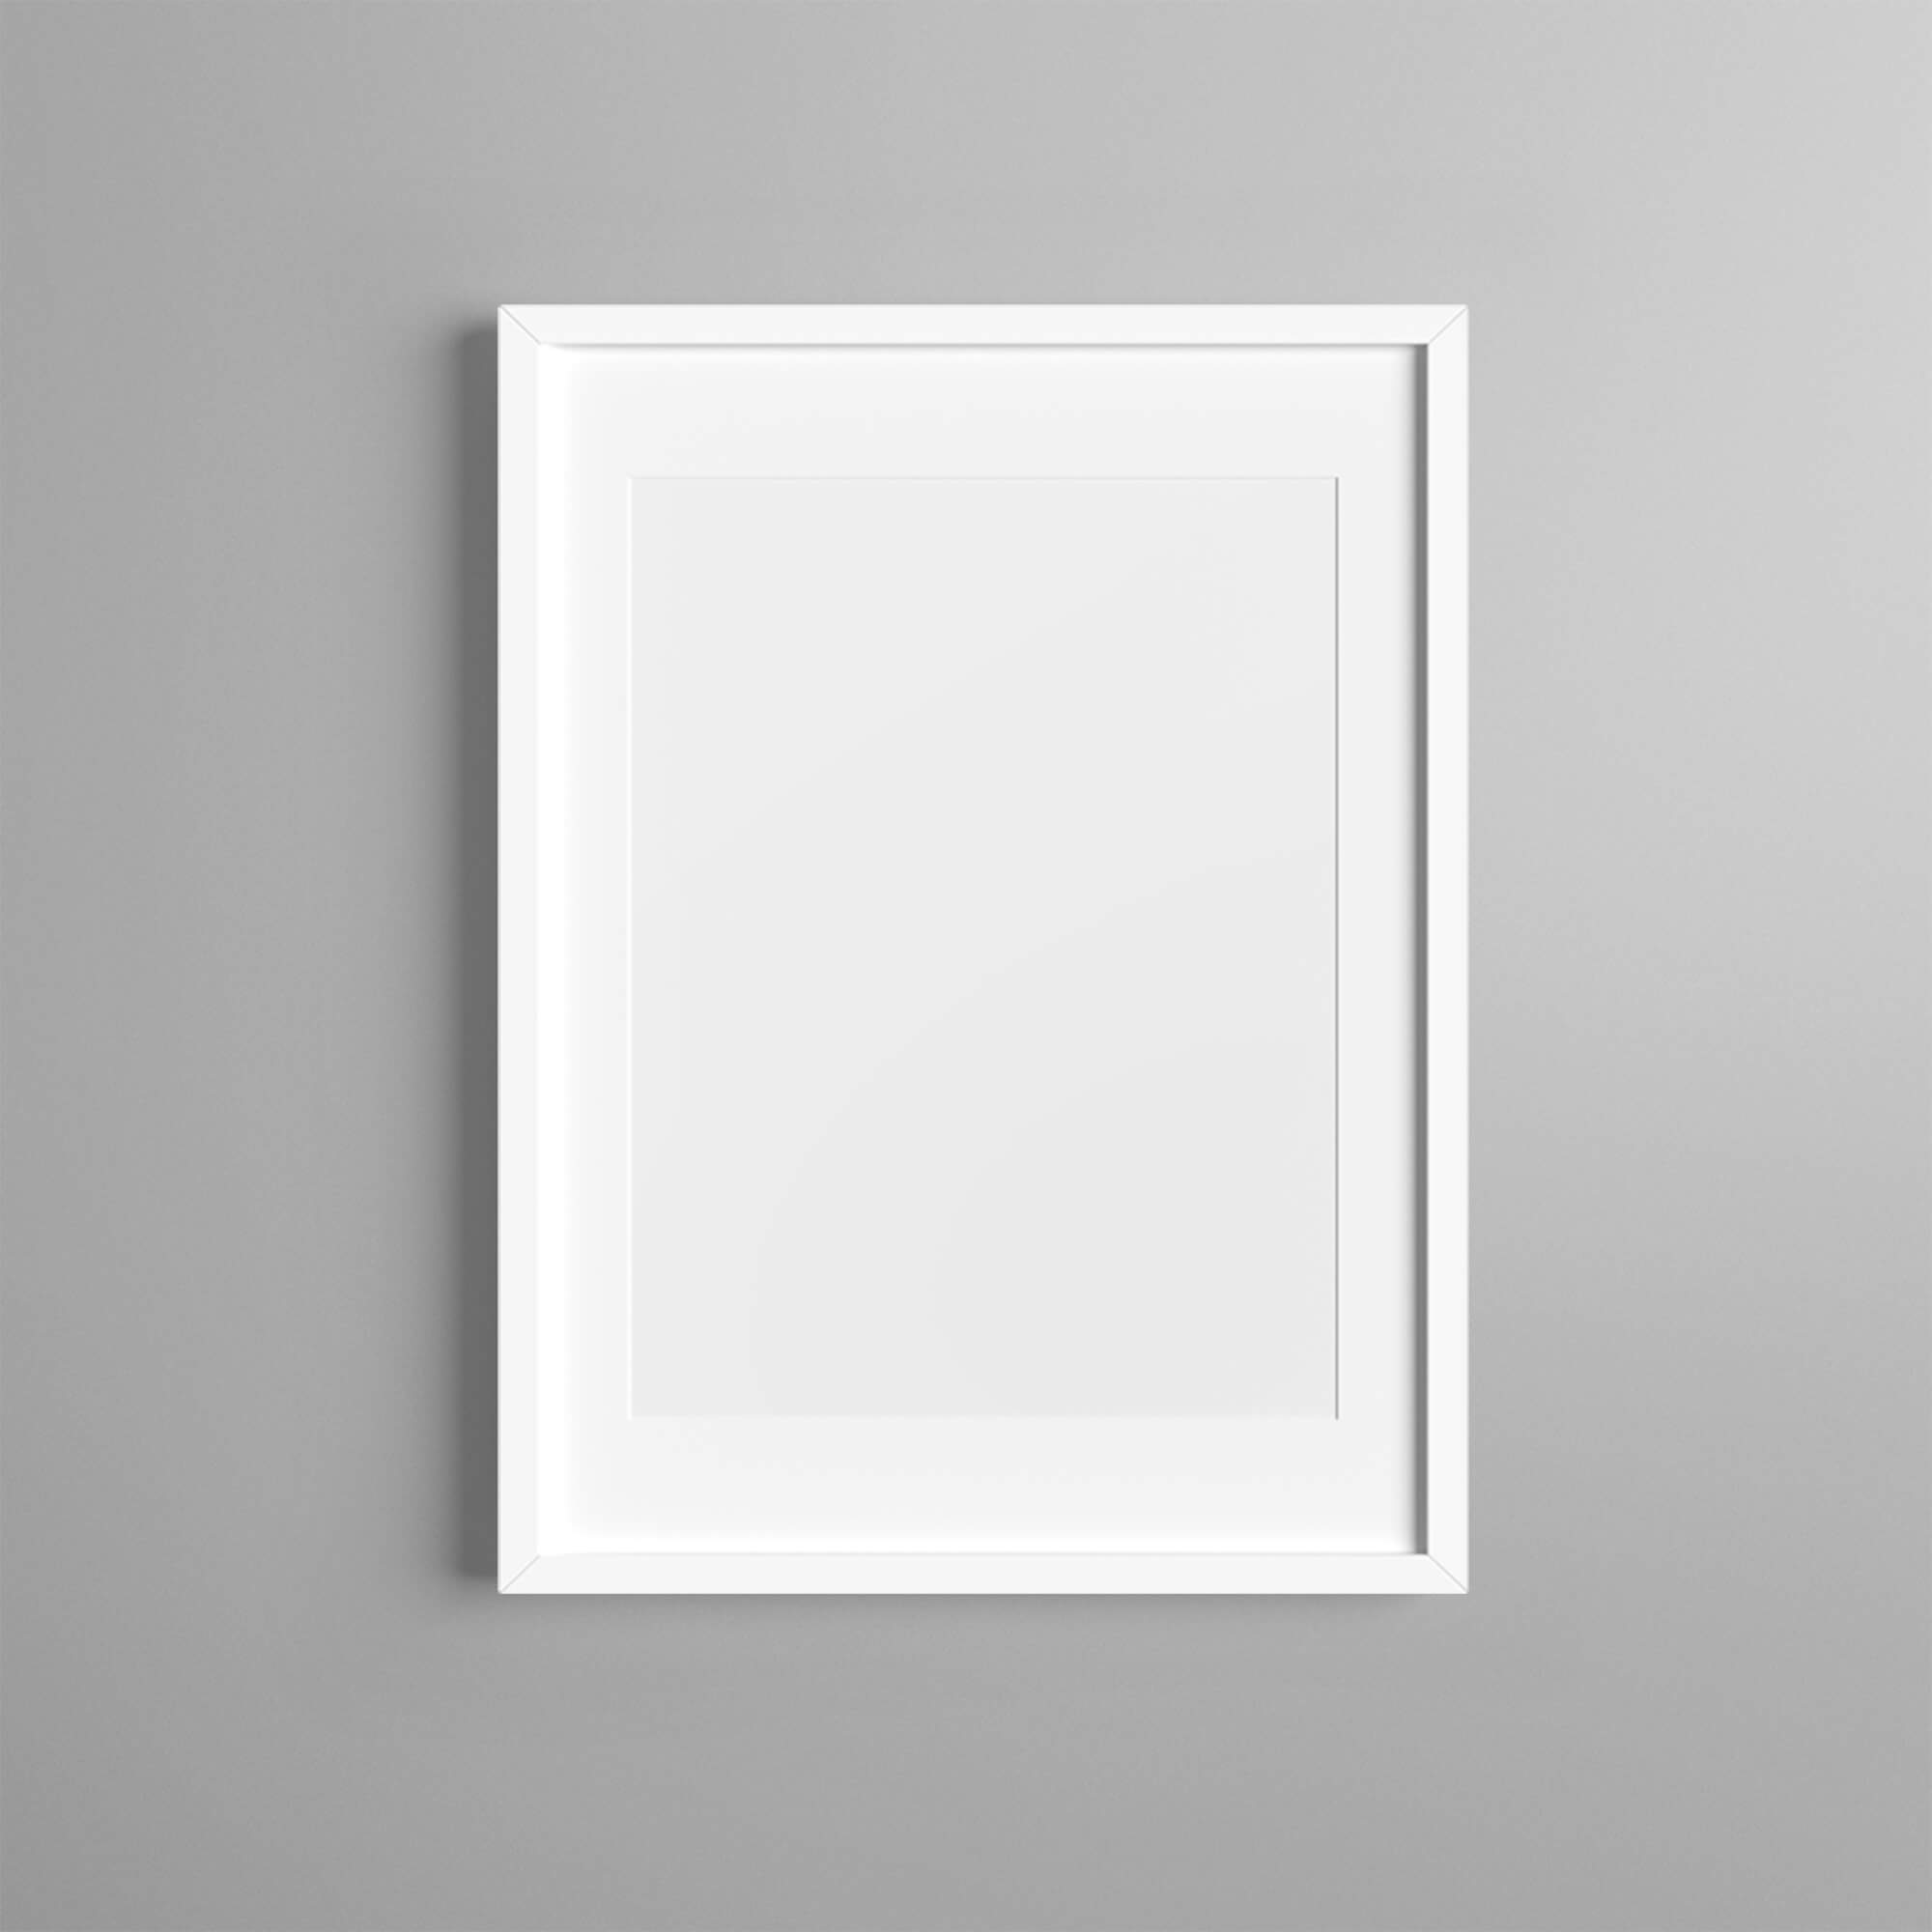 Blank Free Framed Mockup PSD Template (1)